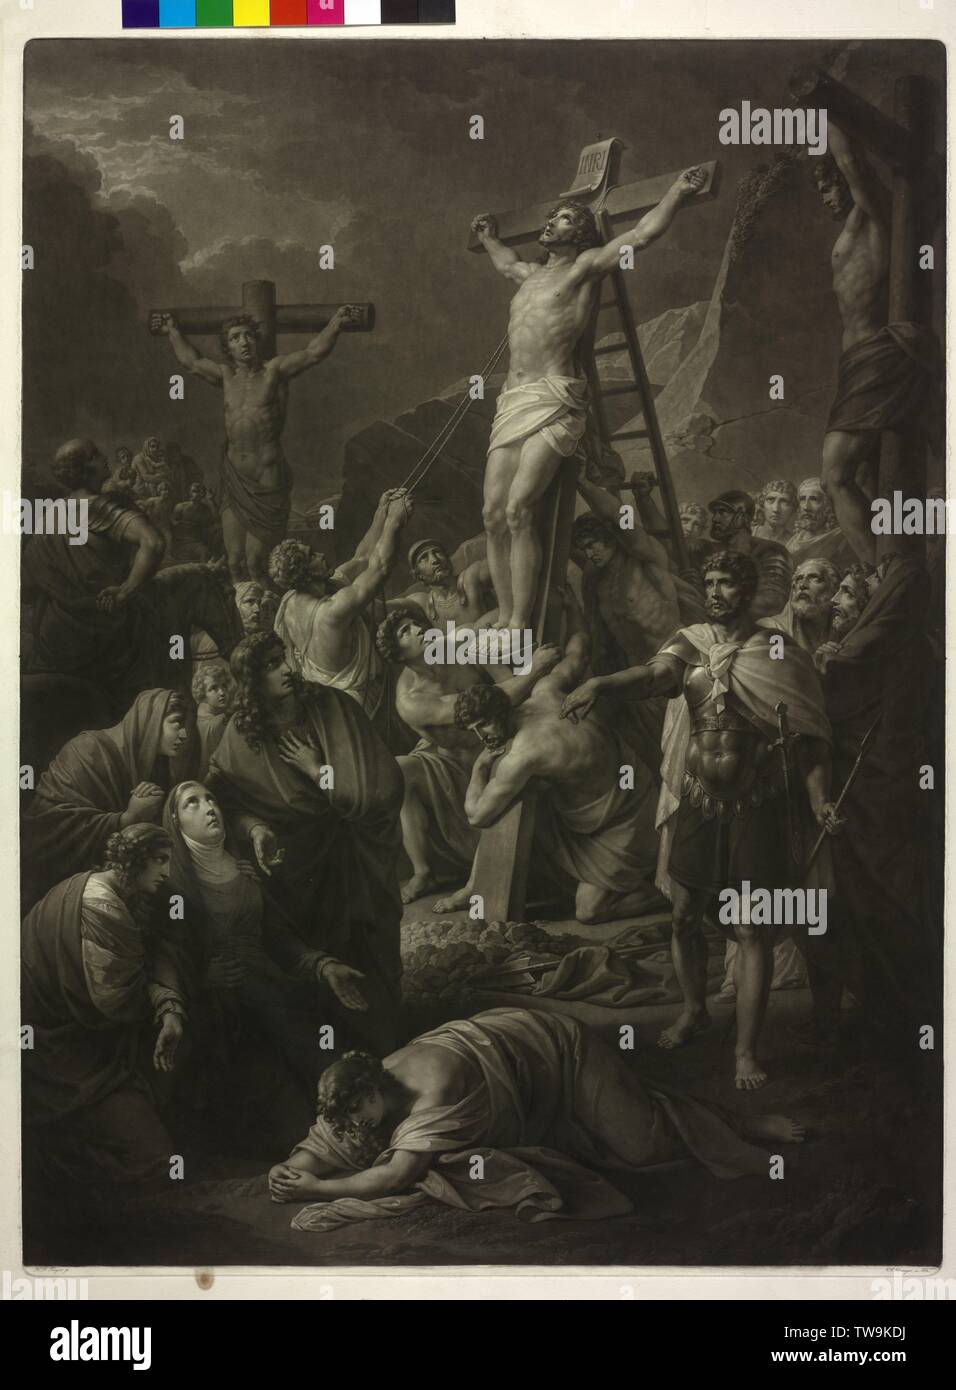 crucifixion Christi, raising of the cross. mezzotint by Vinzenz Georg Kininger based on a painting by Henry Frederick Fueger, designate and dated 1832, Additional-Rights-Clearance-Info-Not-Available Stock Photo